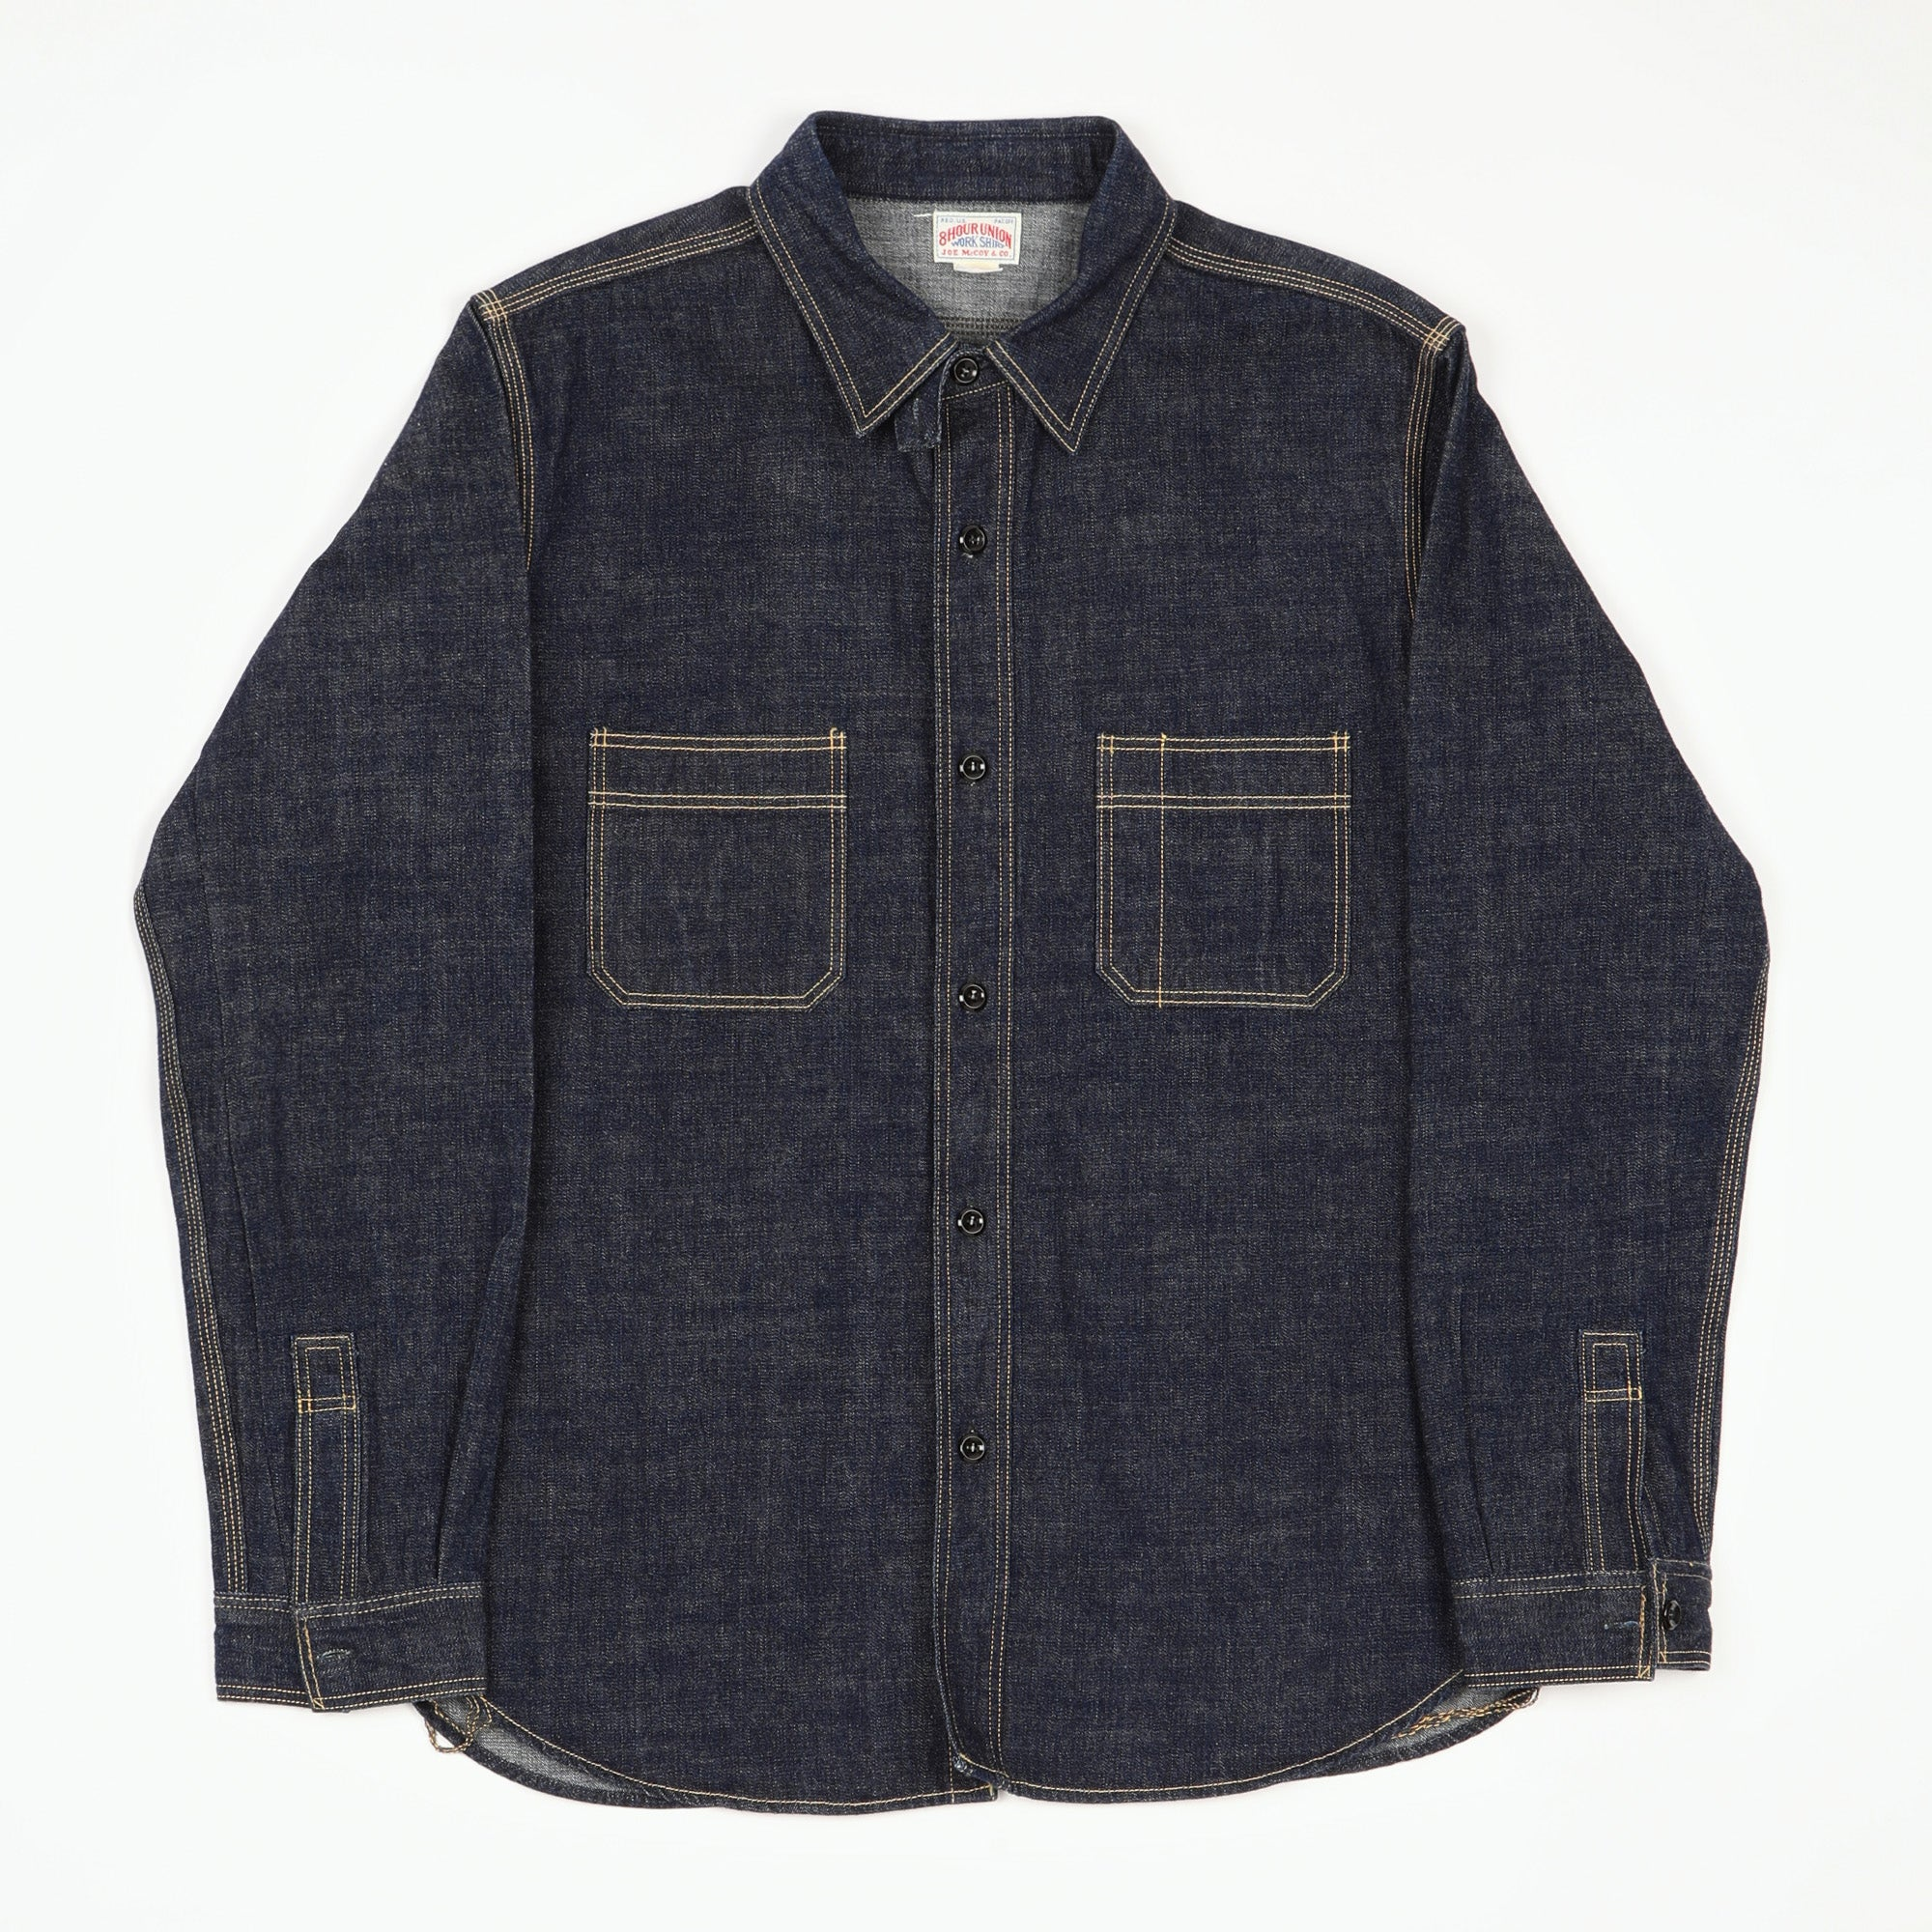 8HU Denim Shirt